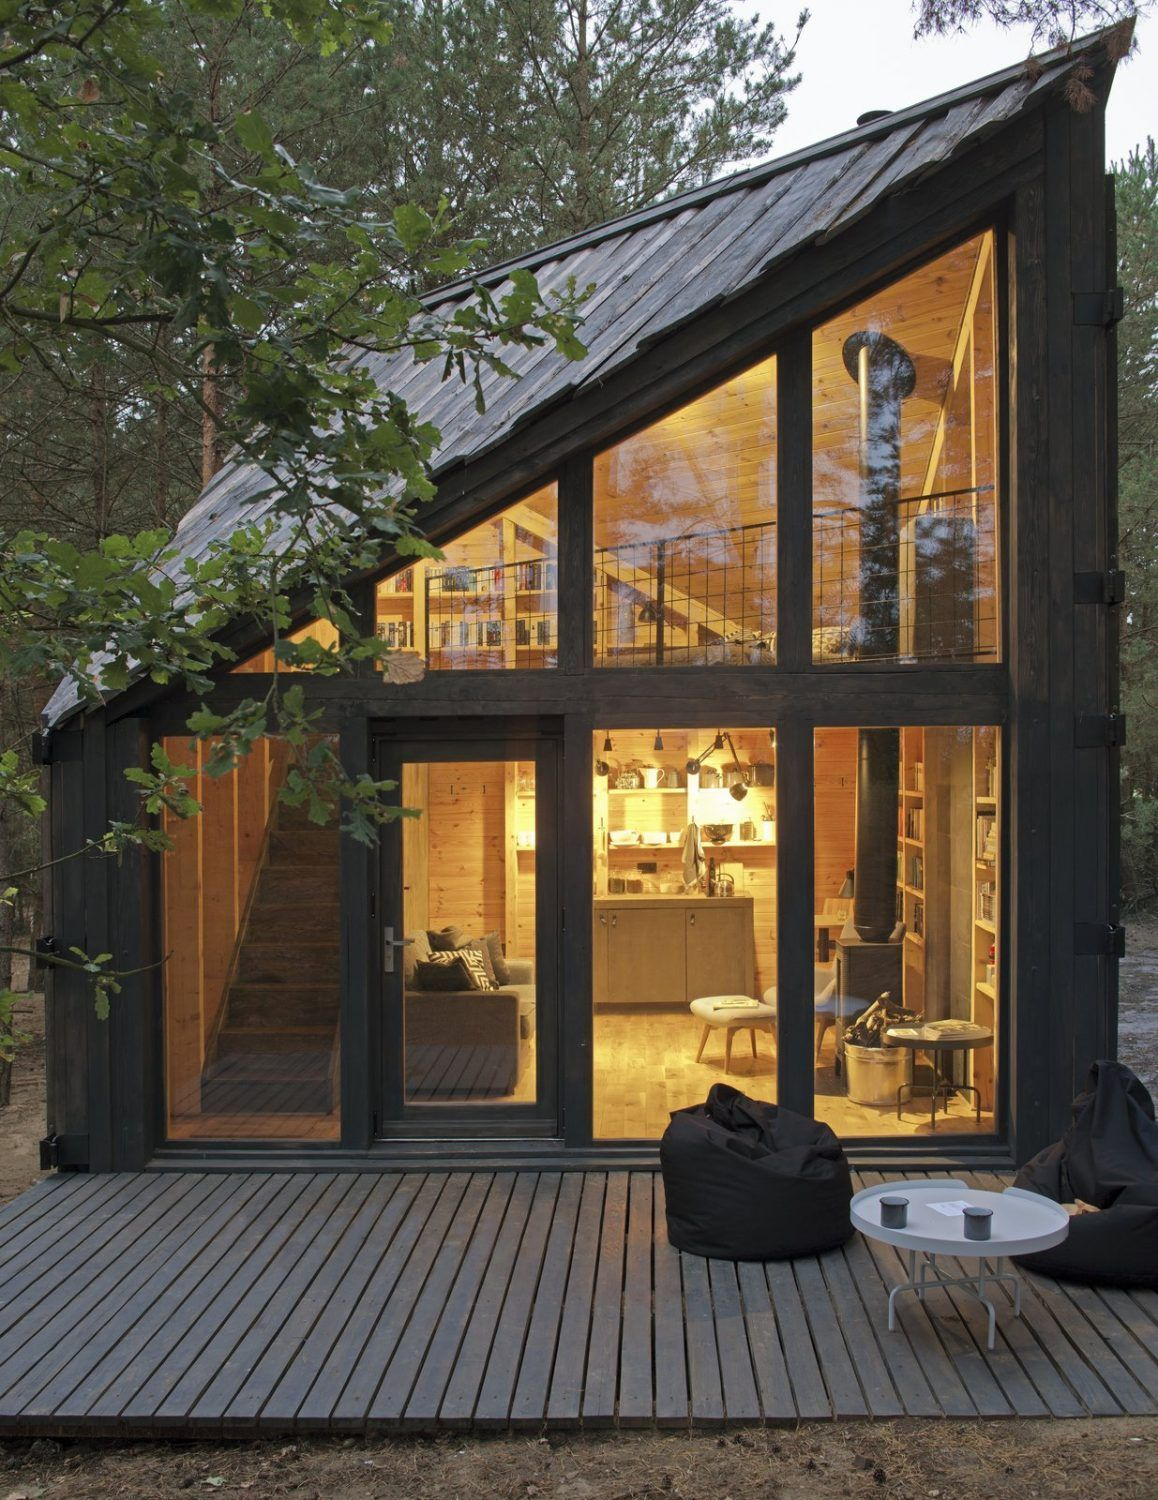 This Cozy Cabin Was Built To Be A Book Lovers Paradise In 2020 Small House Design Small House Glass Cabin